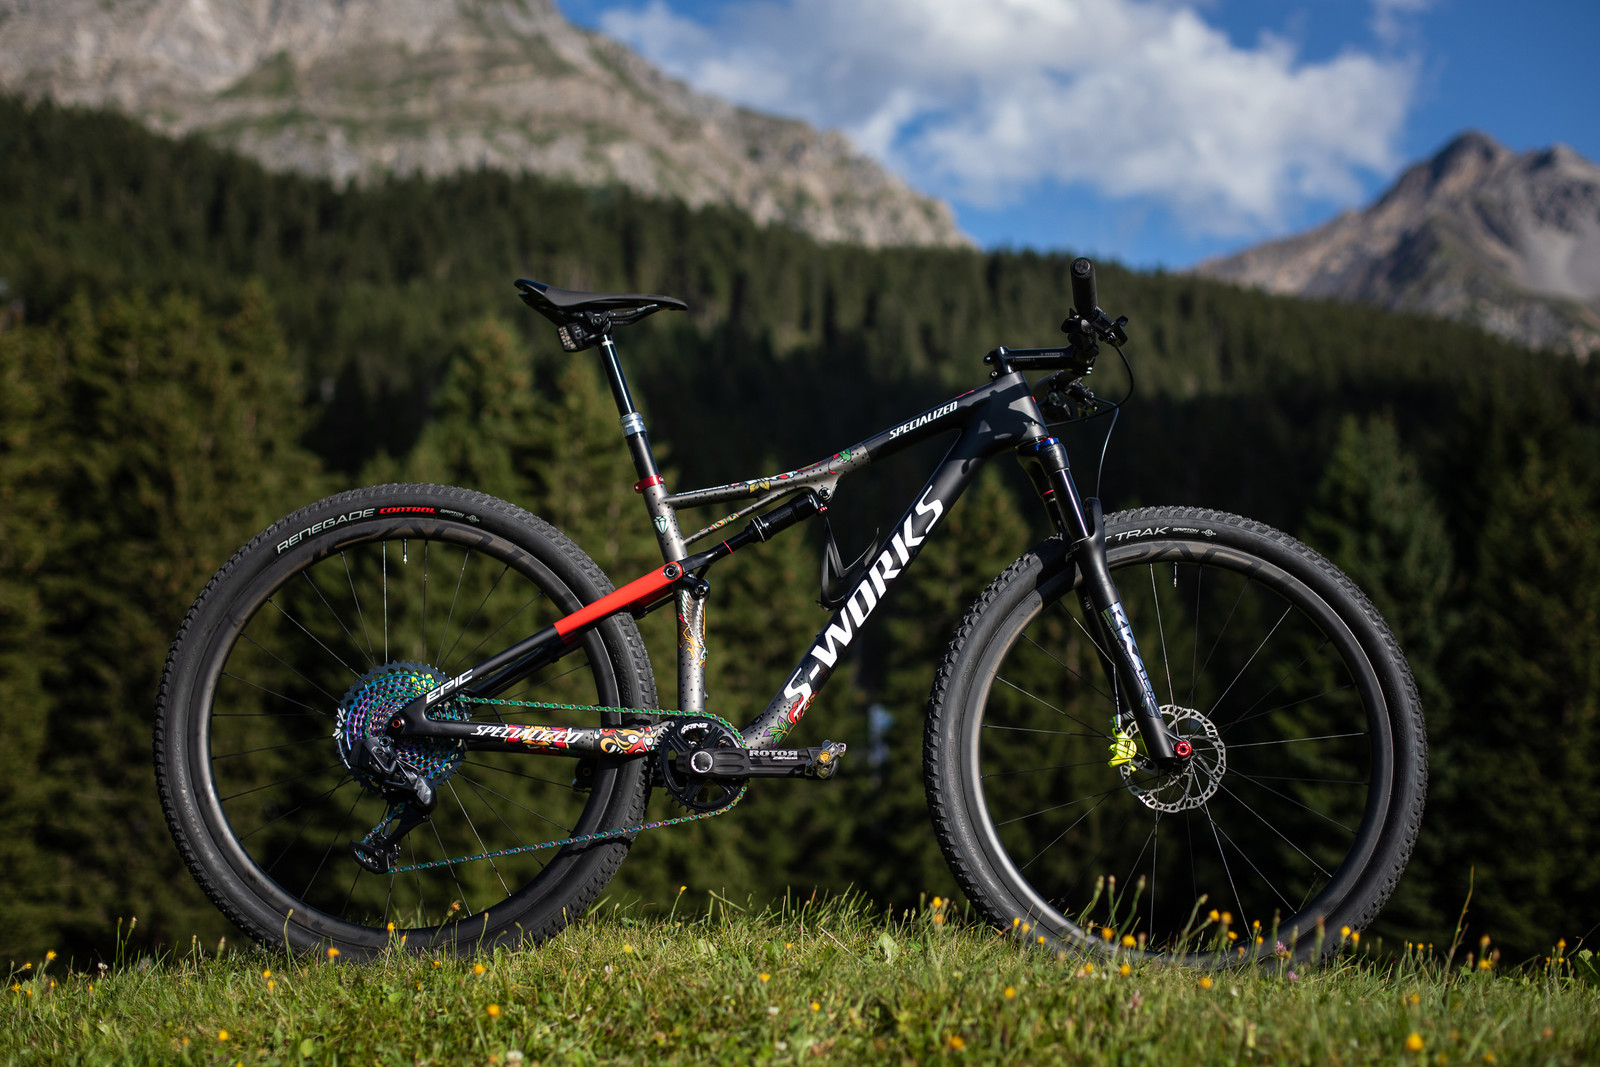 2019 World Championships XC Race Bikes - Simon Andreassen's Specialized Epic - 2019 World Championships Cross Country Race Bikes from Specialized - Mountain Biking Pictures - Vital MTB